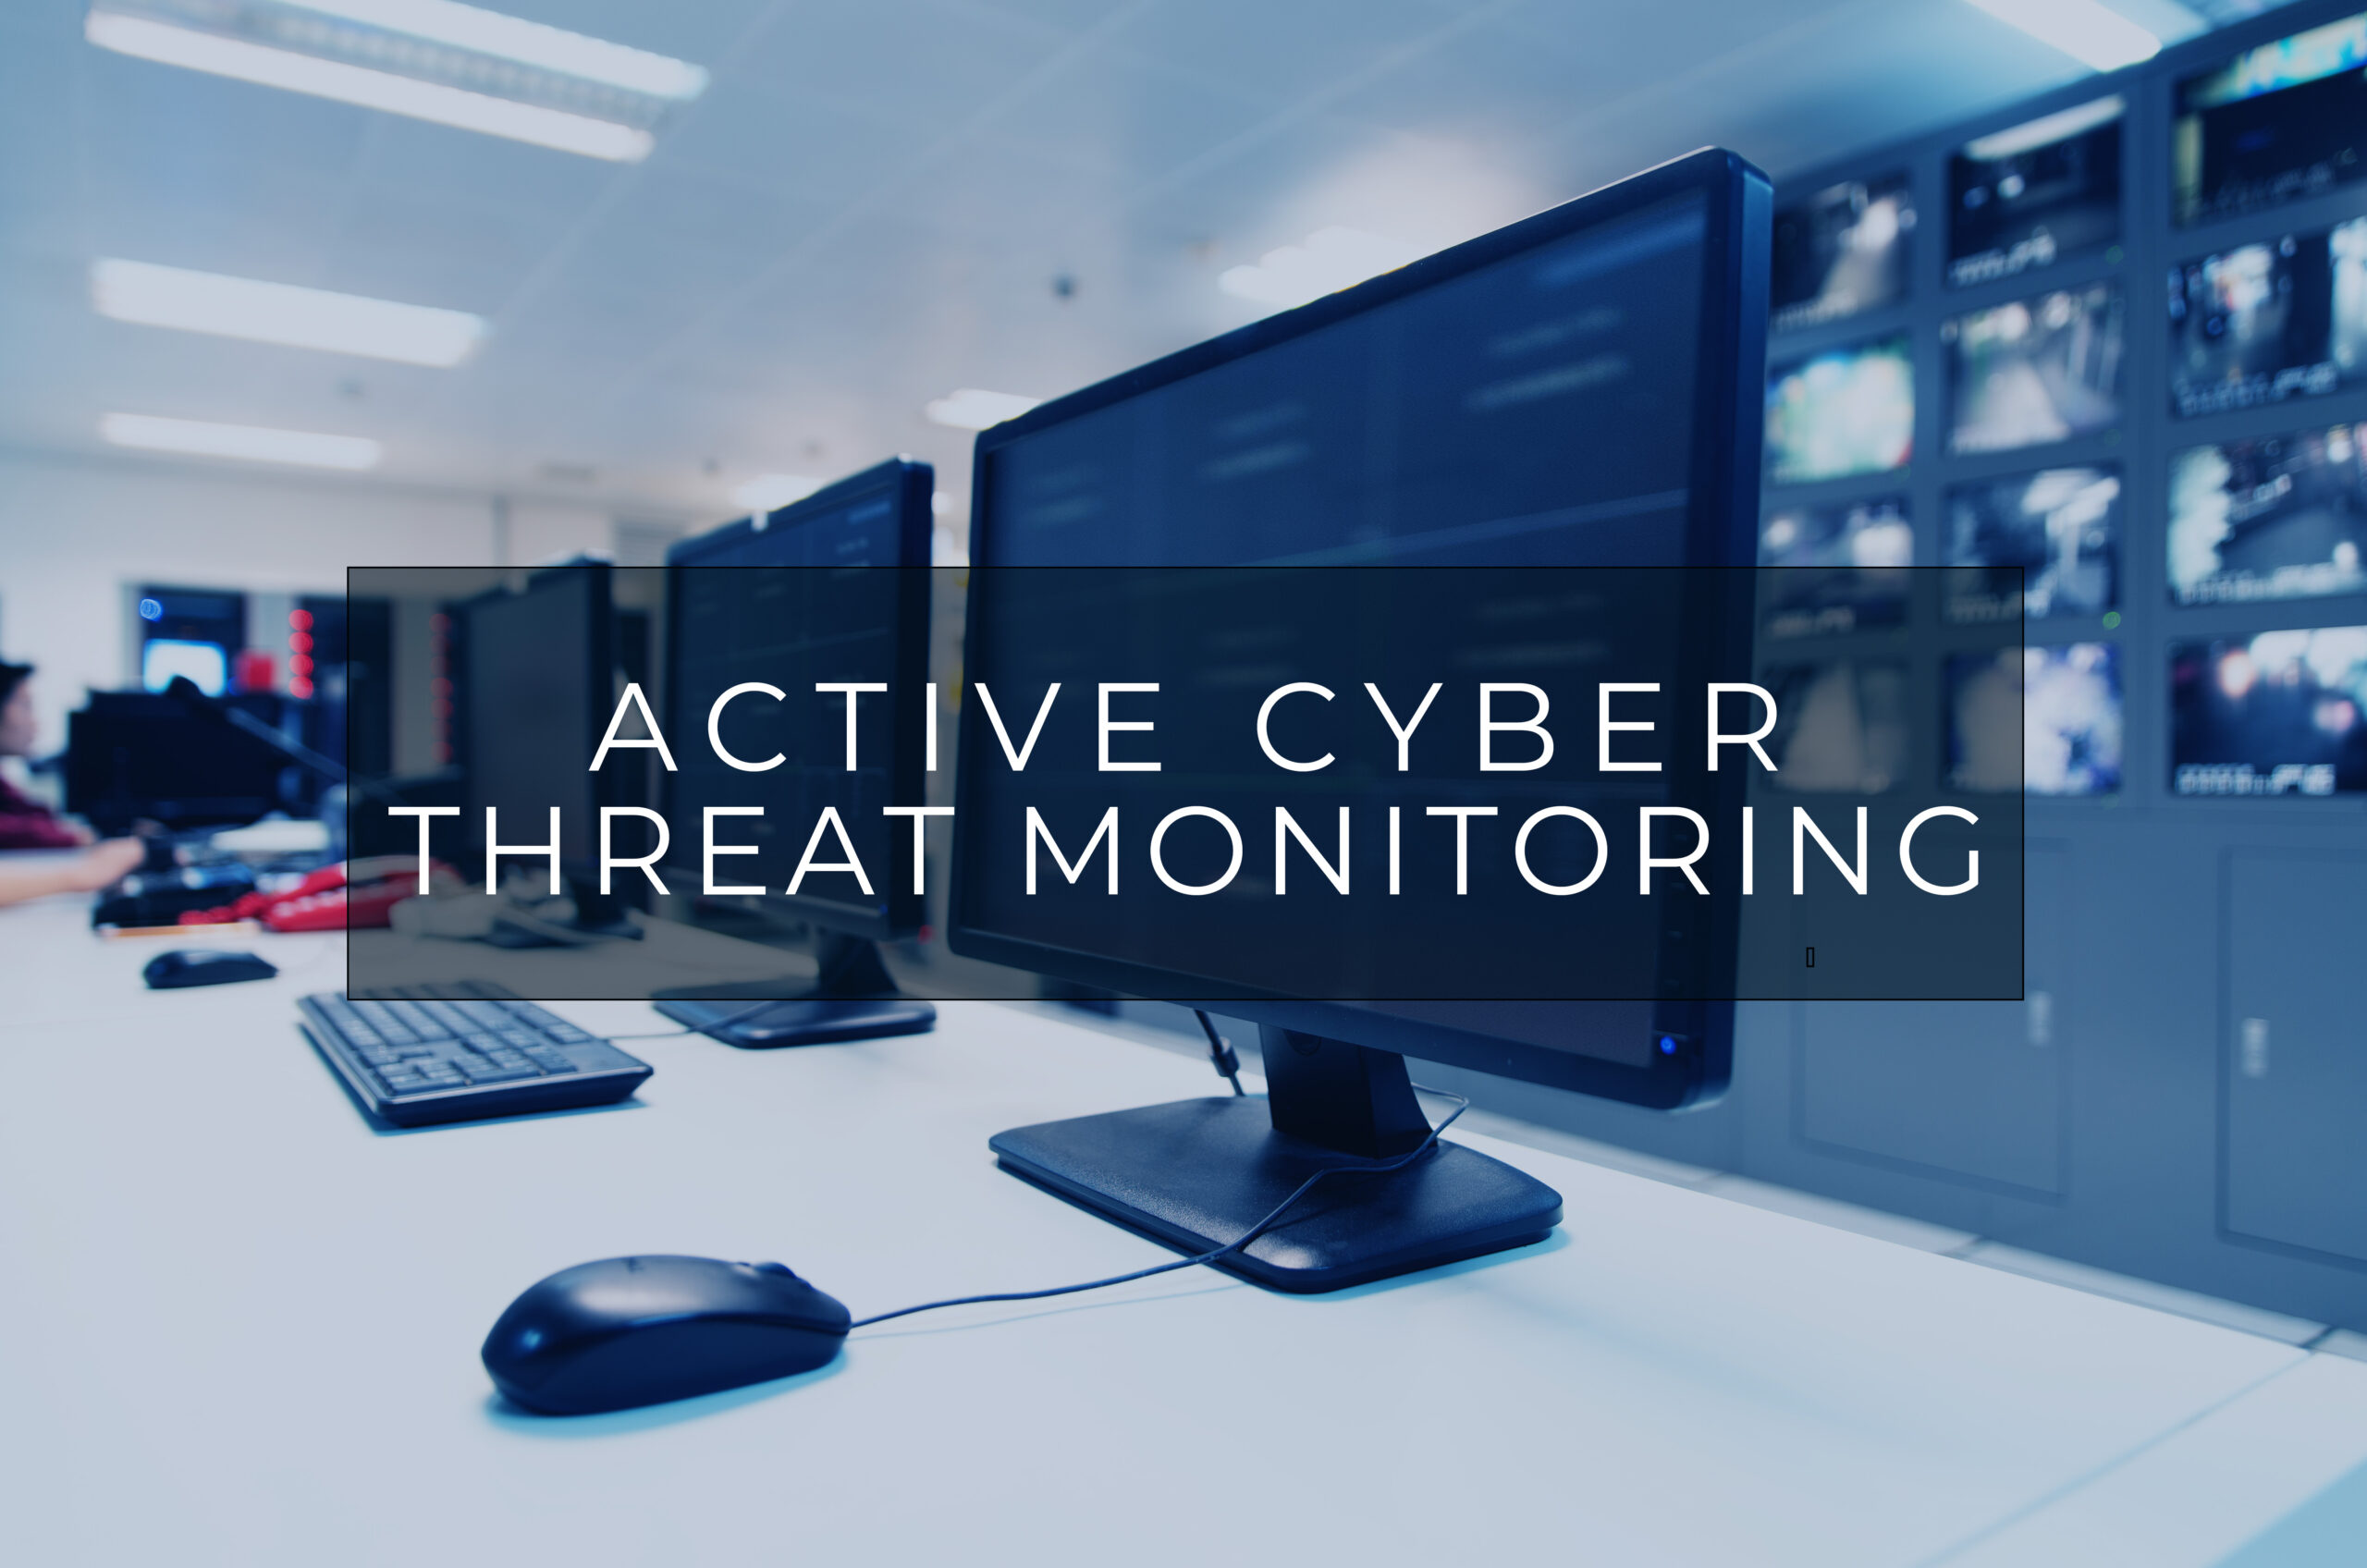 Active Cyber Monitoring